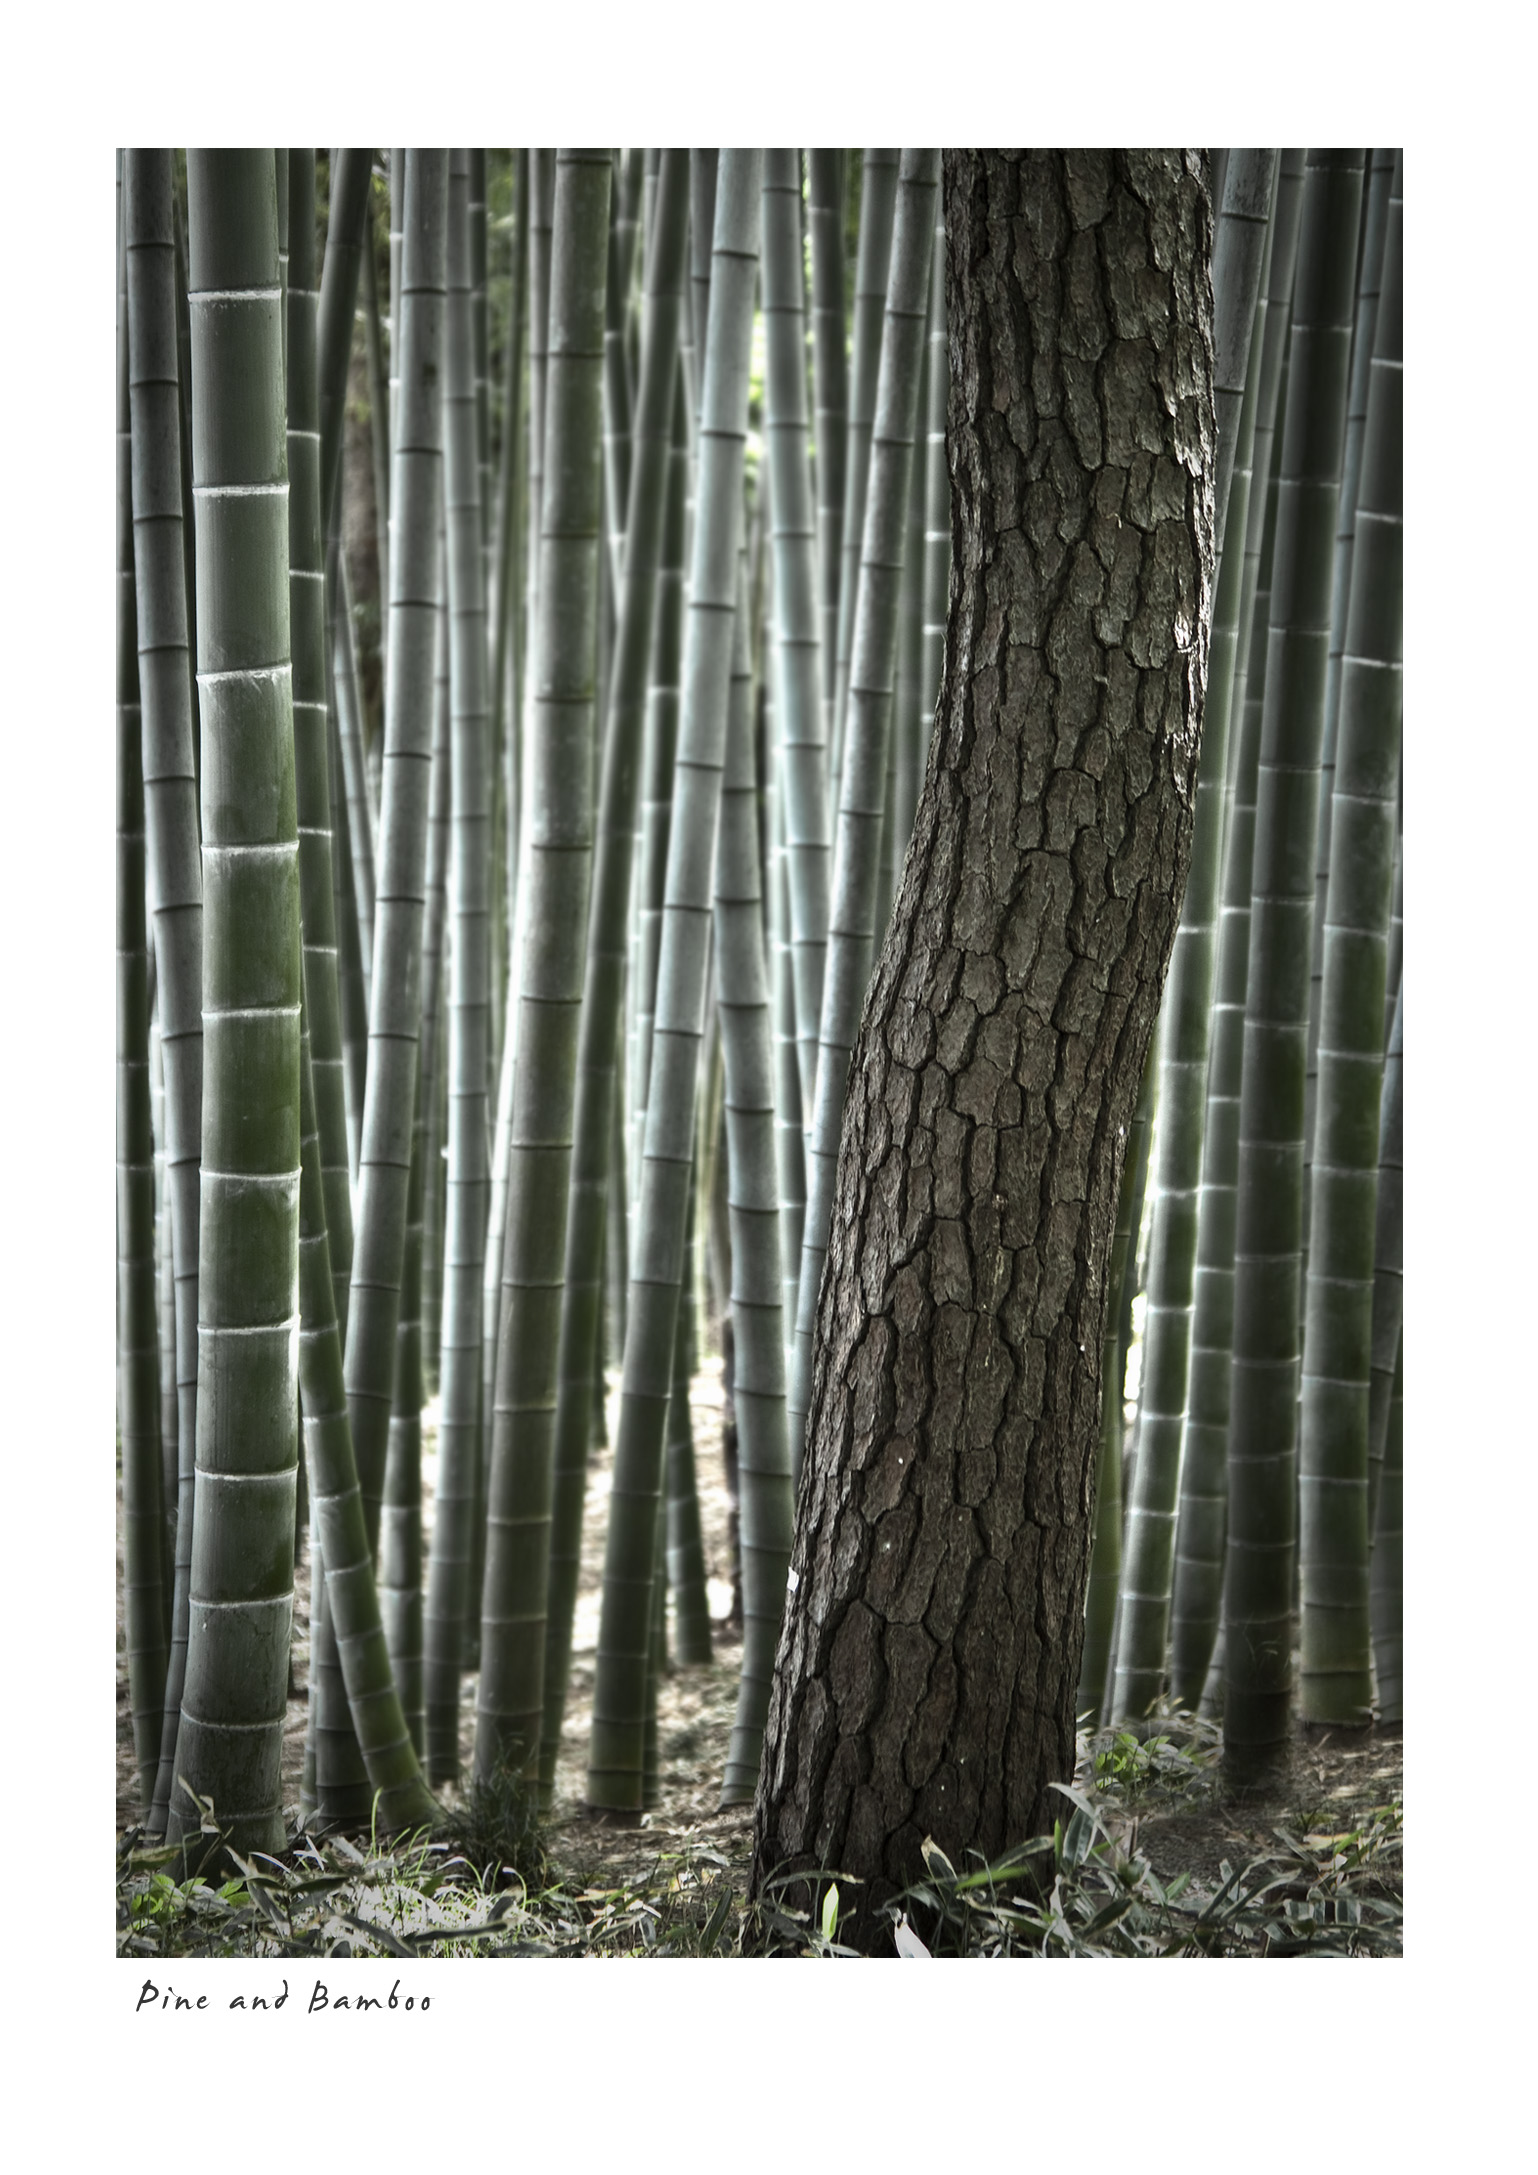 Pine and Bamboo